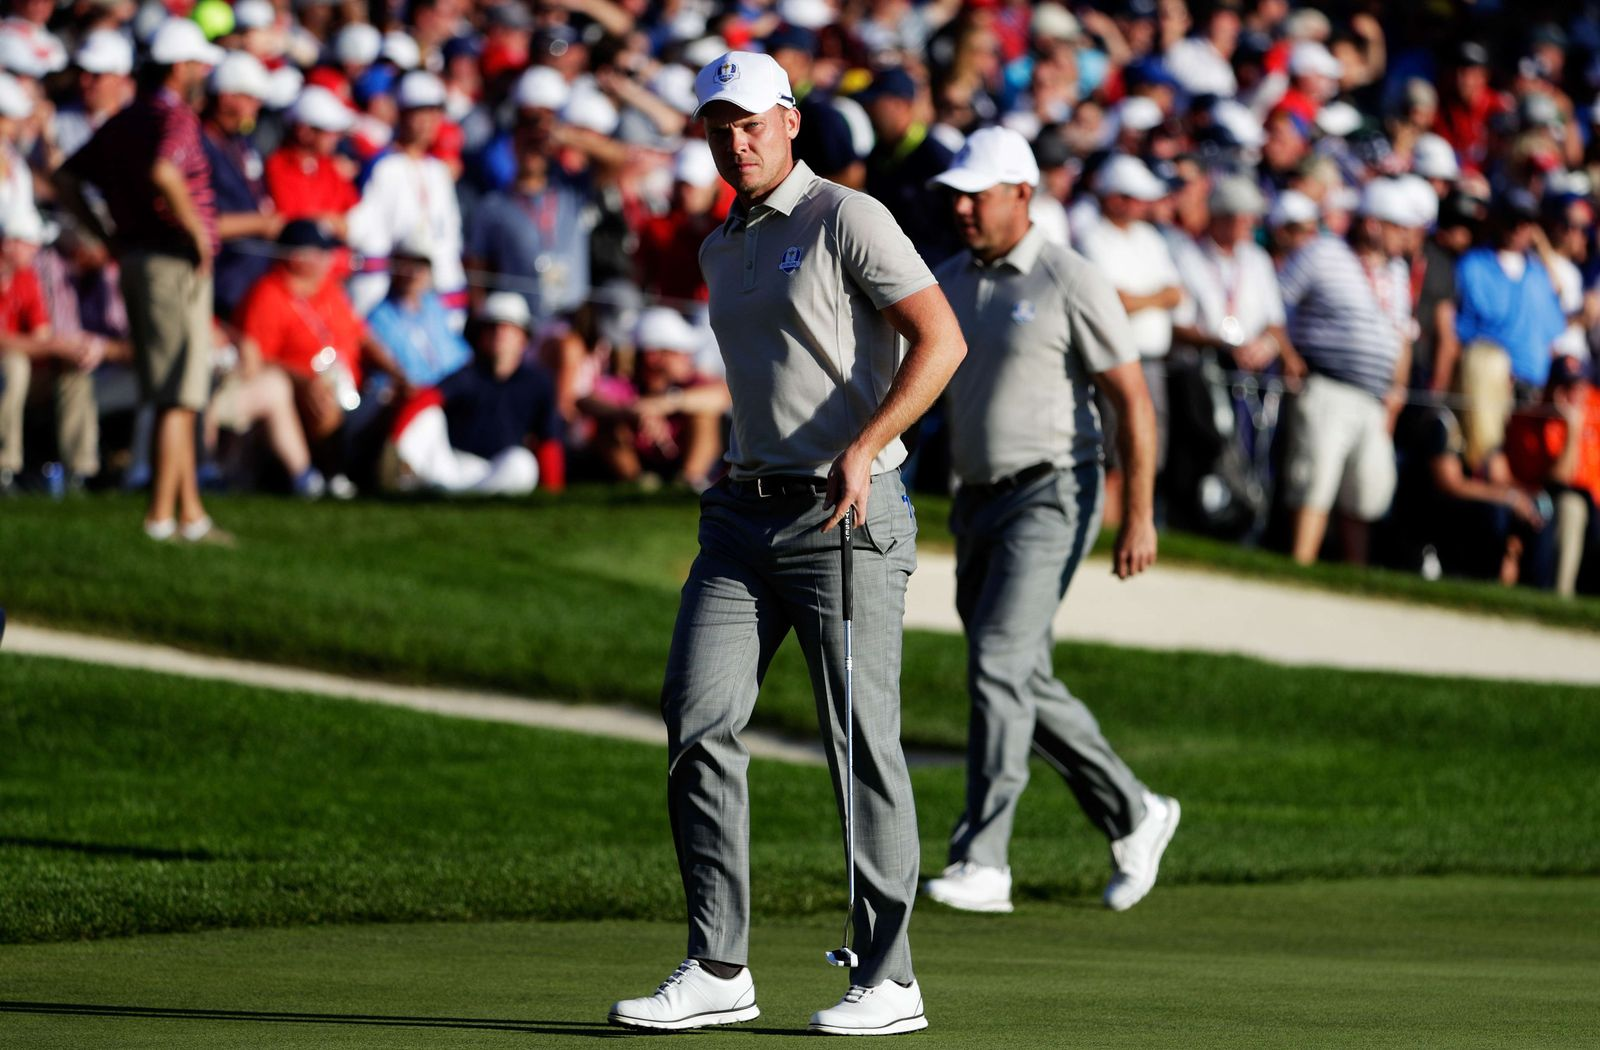 SPO-GLF-MAJ-2016-RYDER-CUP---AFTERNOON-FOURBALL-MATCHES